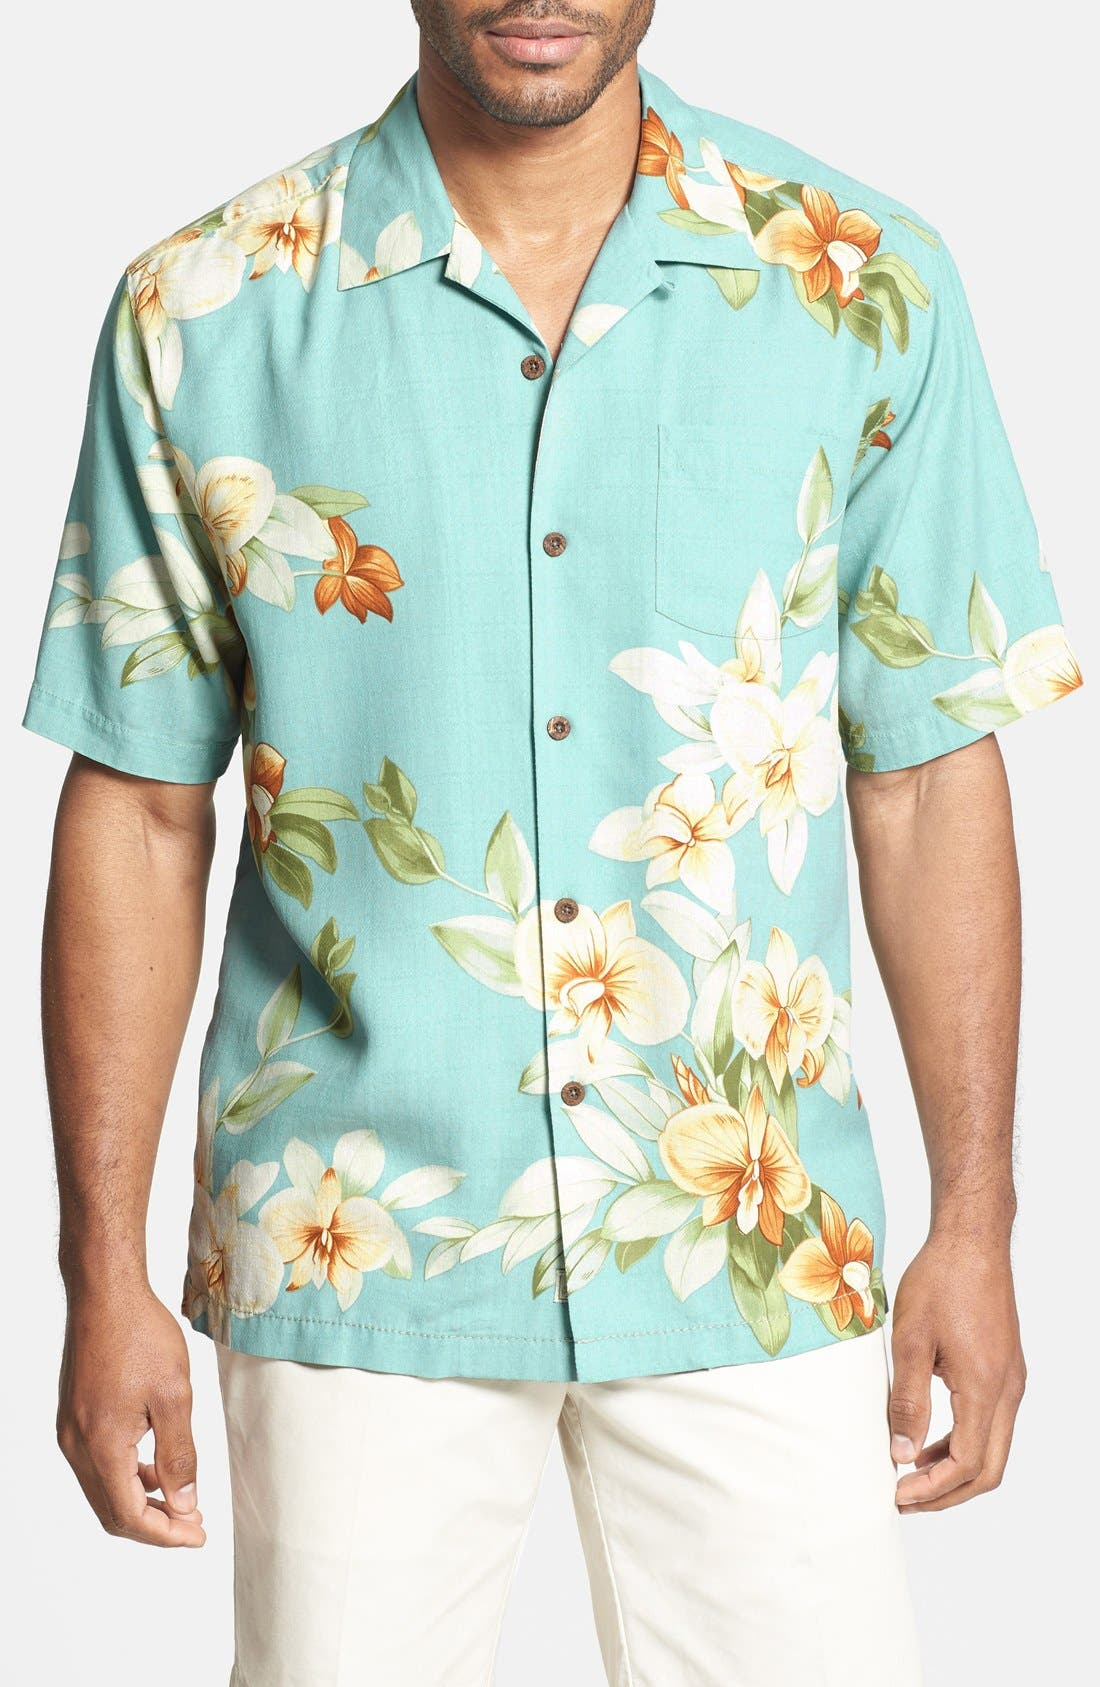 Alternate Image 1 Selected - Tommy Bahama 'Treasure Beach Floral' Silk Campshirt